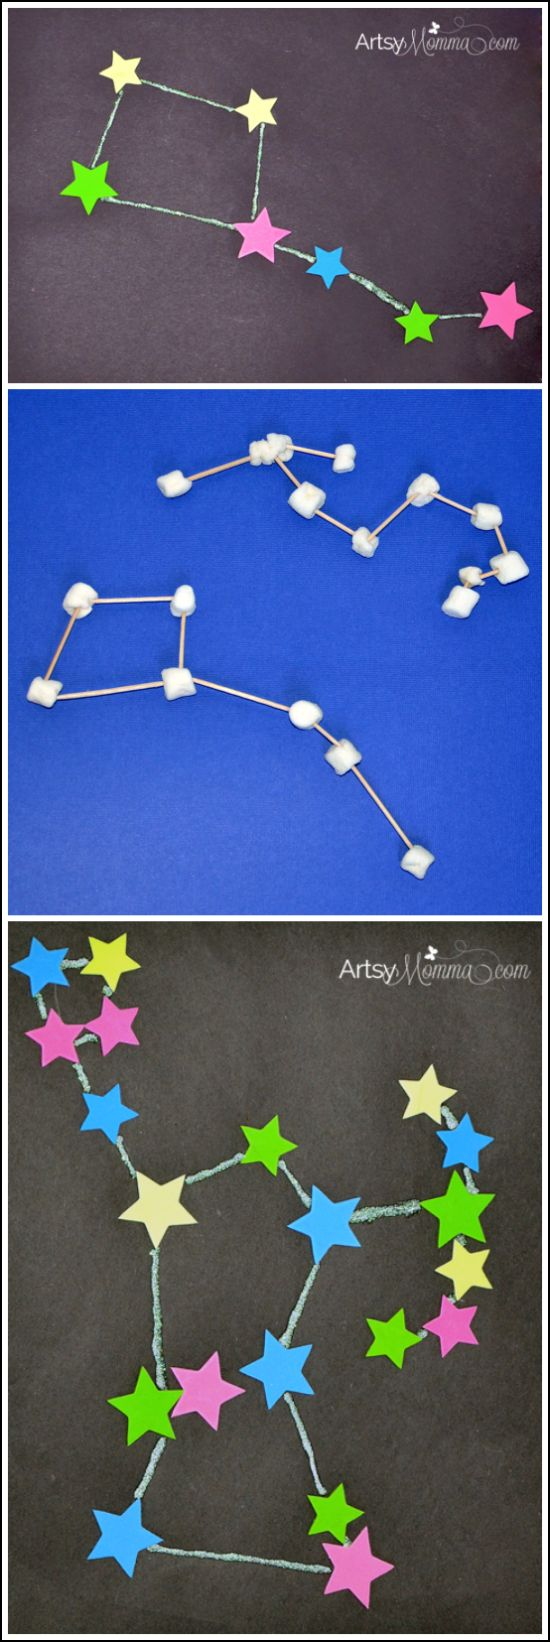 Learn about space by mapping out constellations with foam stars or marshmallows #STEM